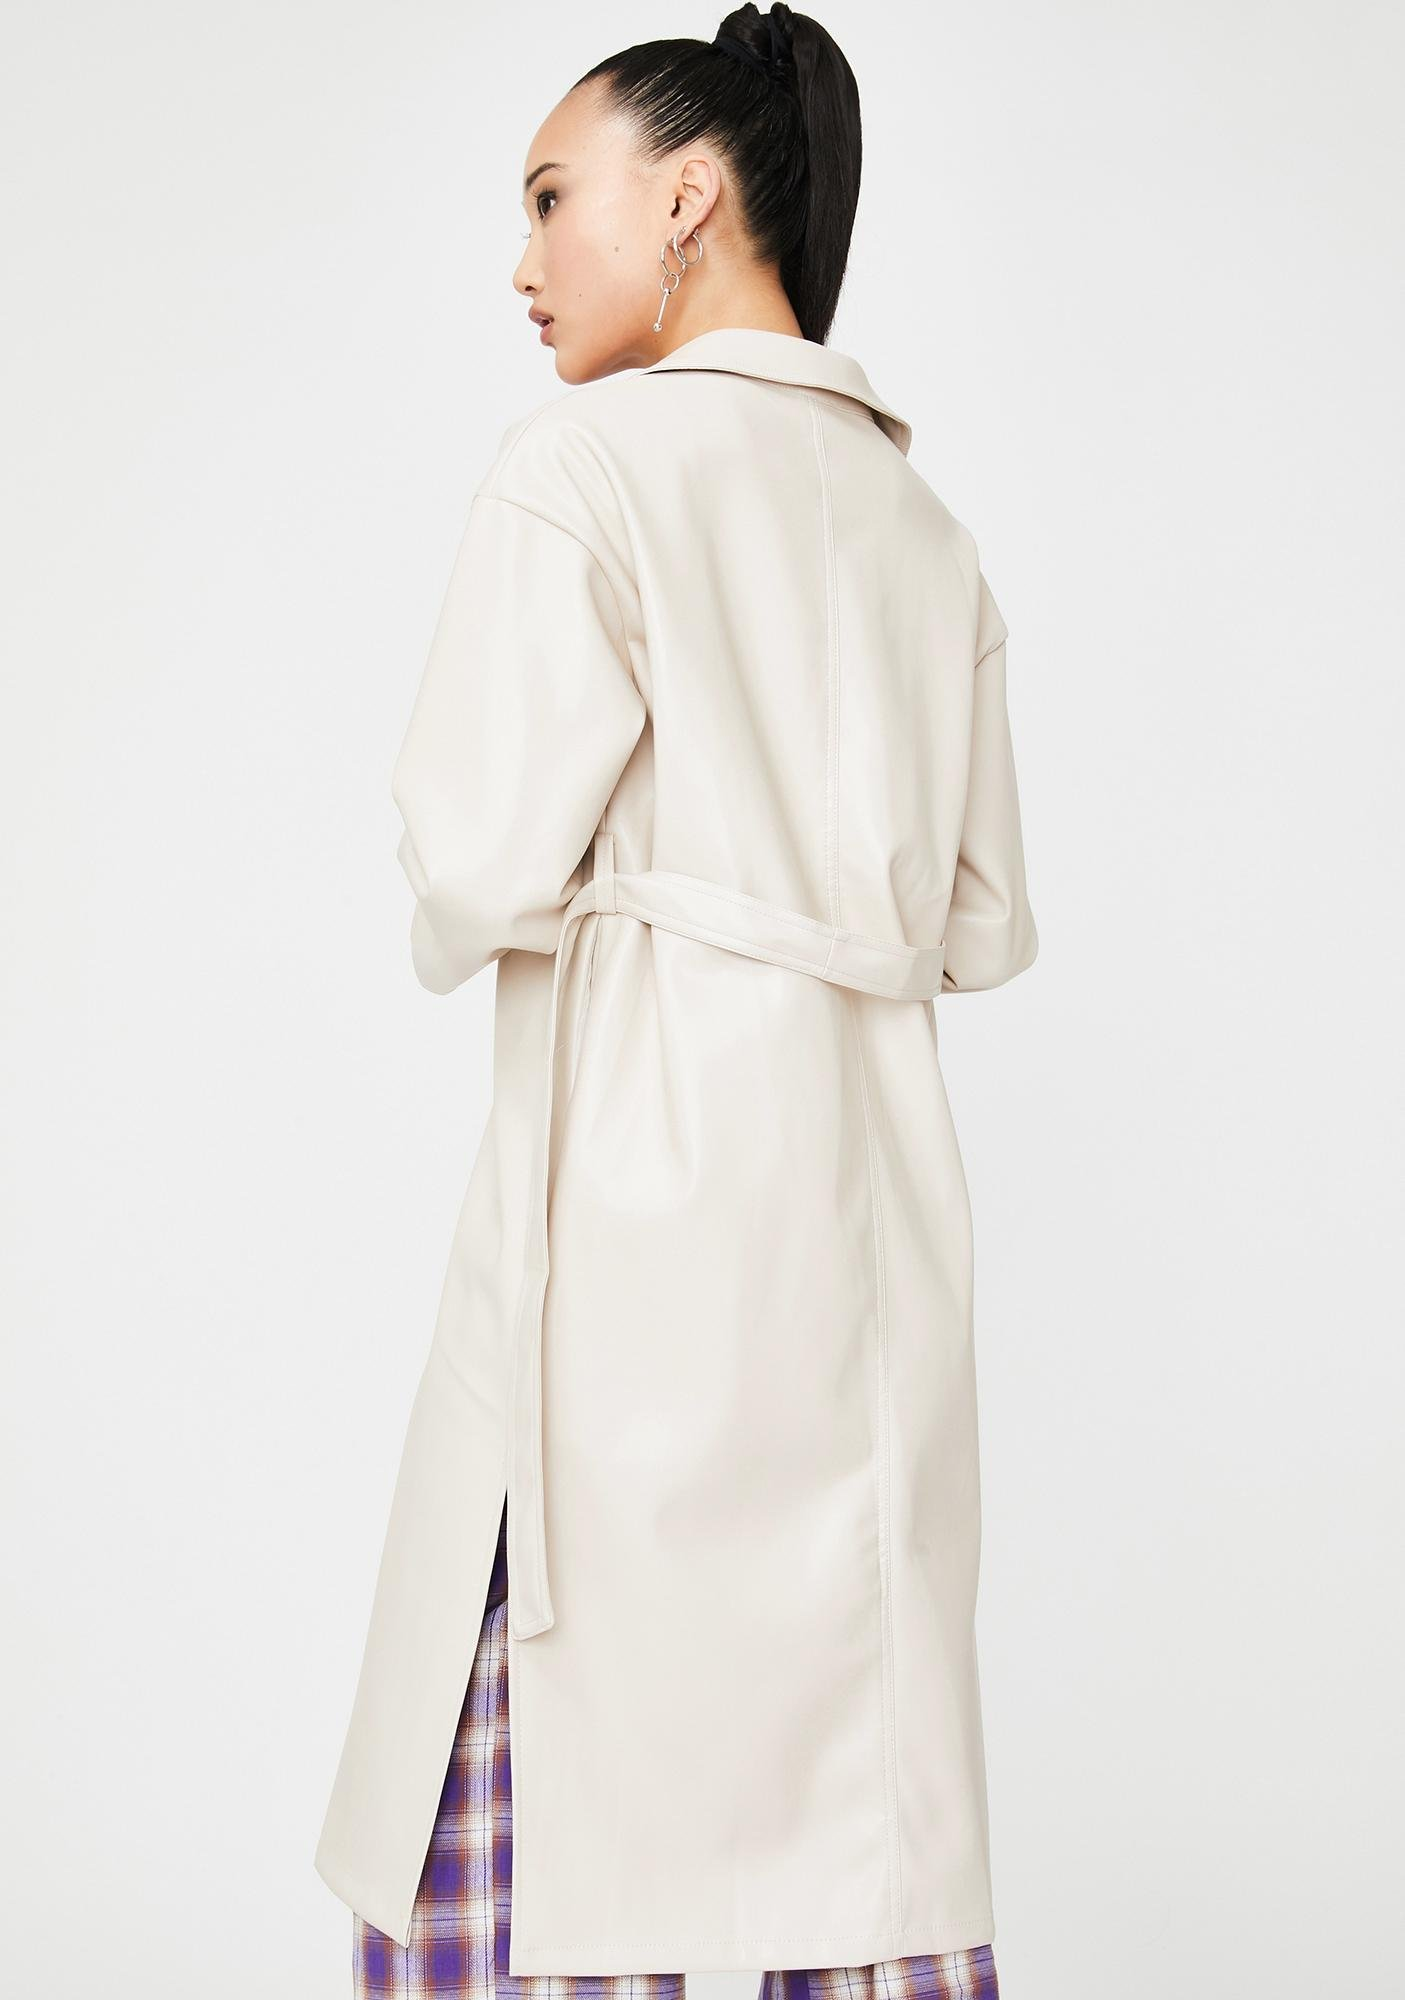 Alzang Cream Vegan Leather Trench Coat